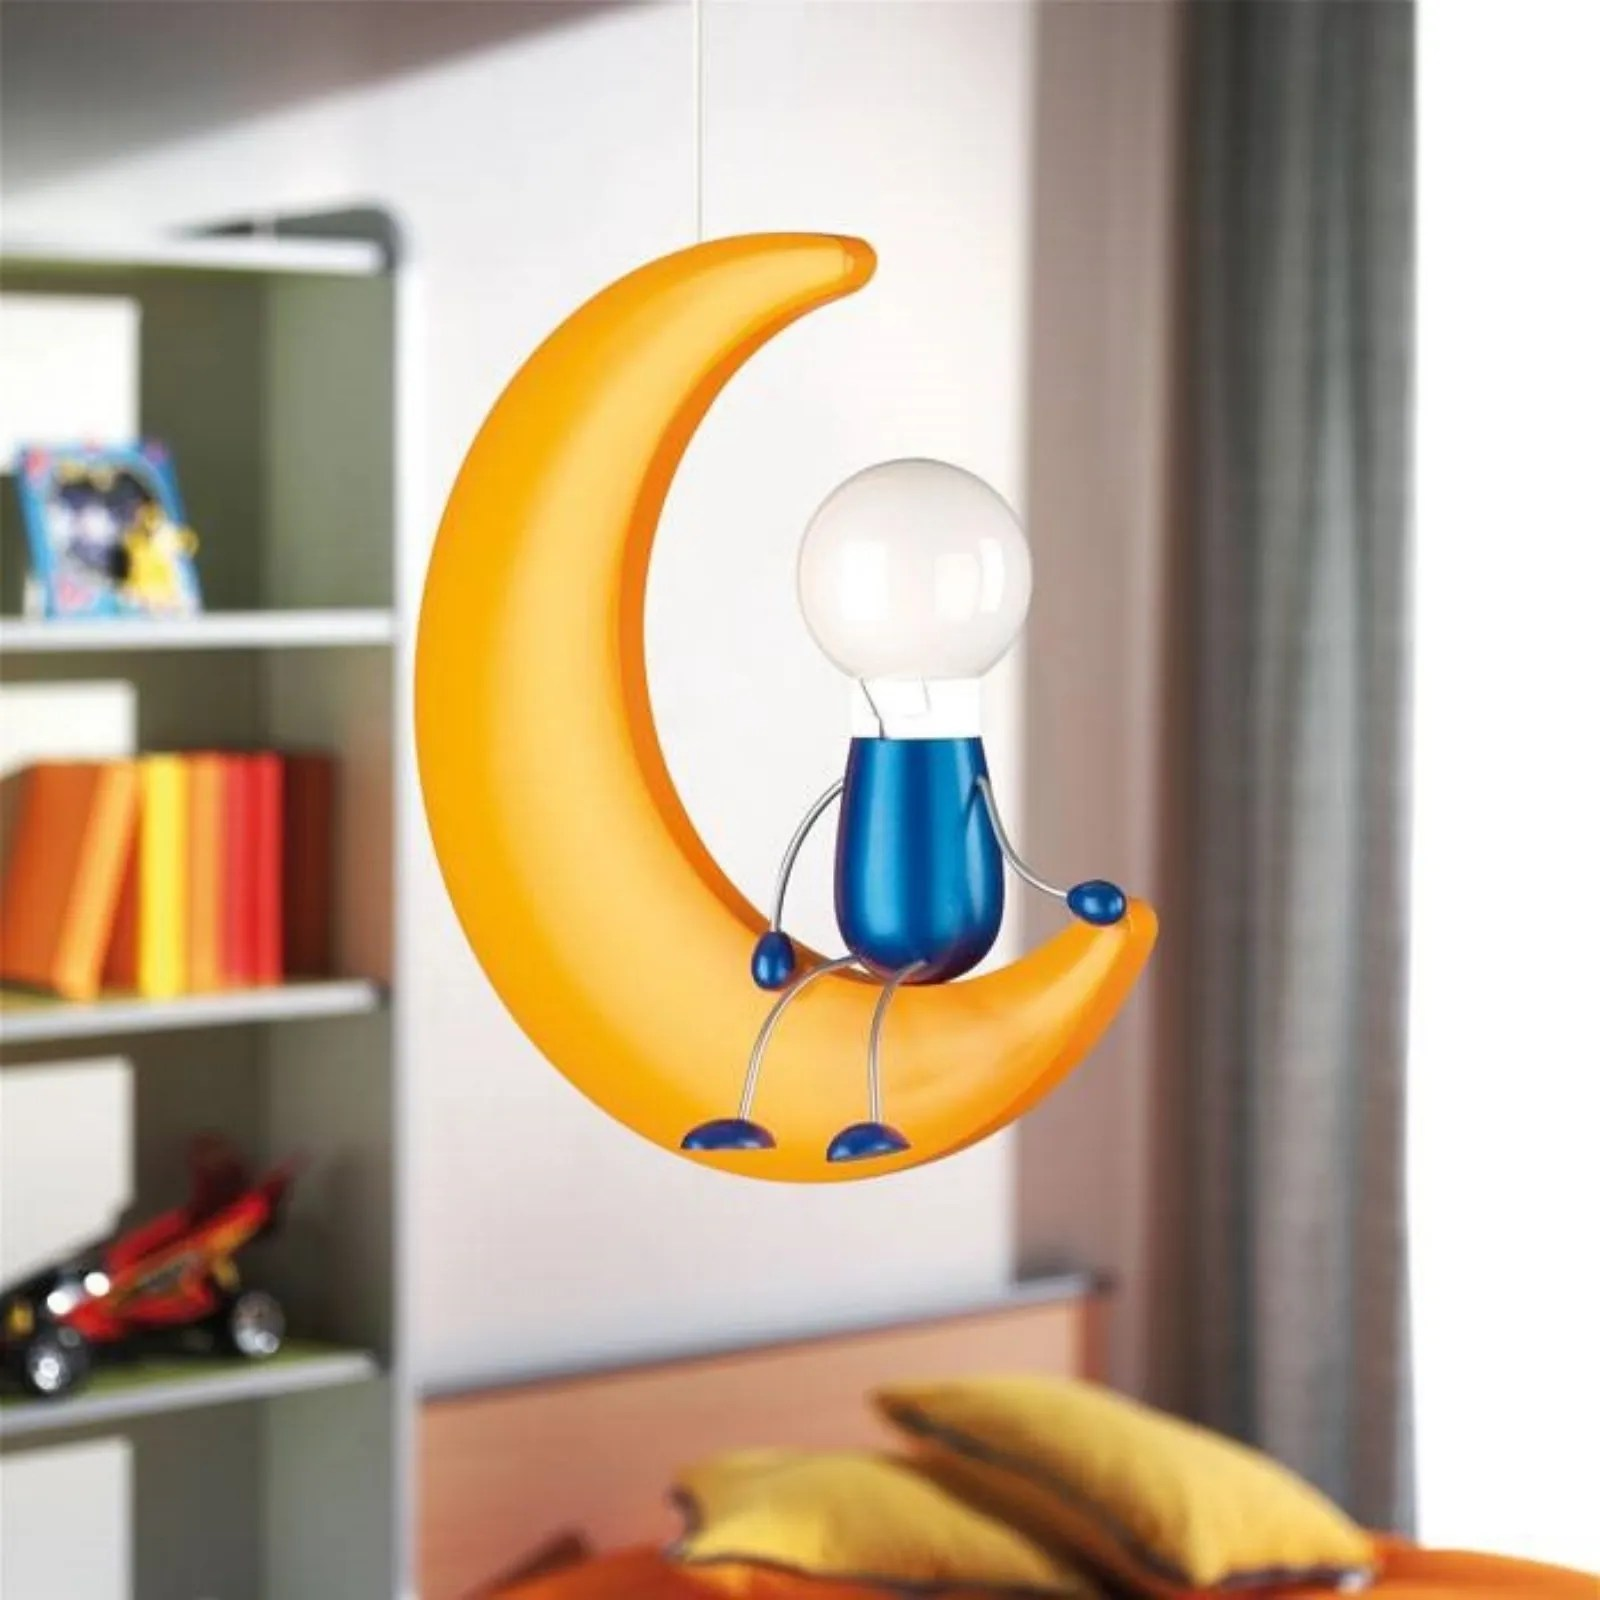 You'll be inspired to attempt your own diy projects with the retailer's furniture. Lampadari Per Bambini